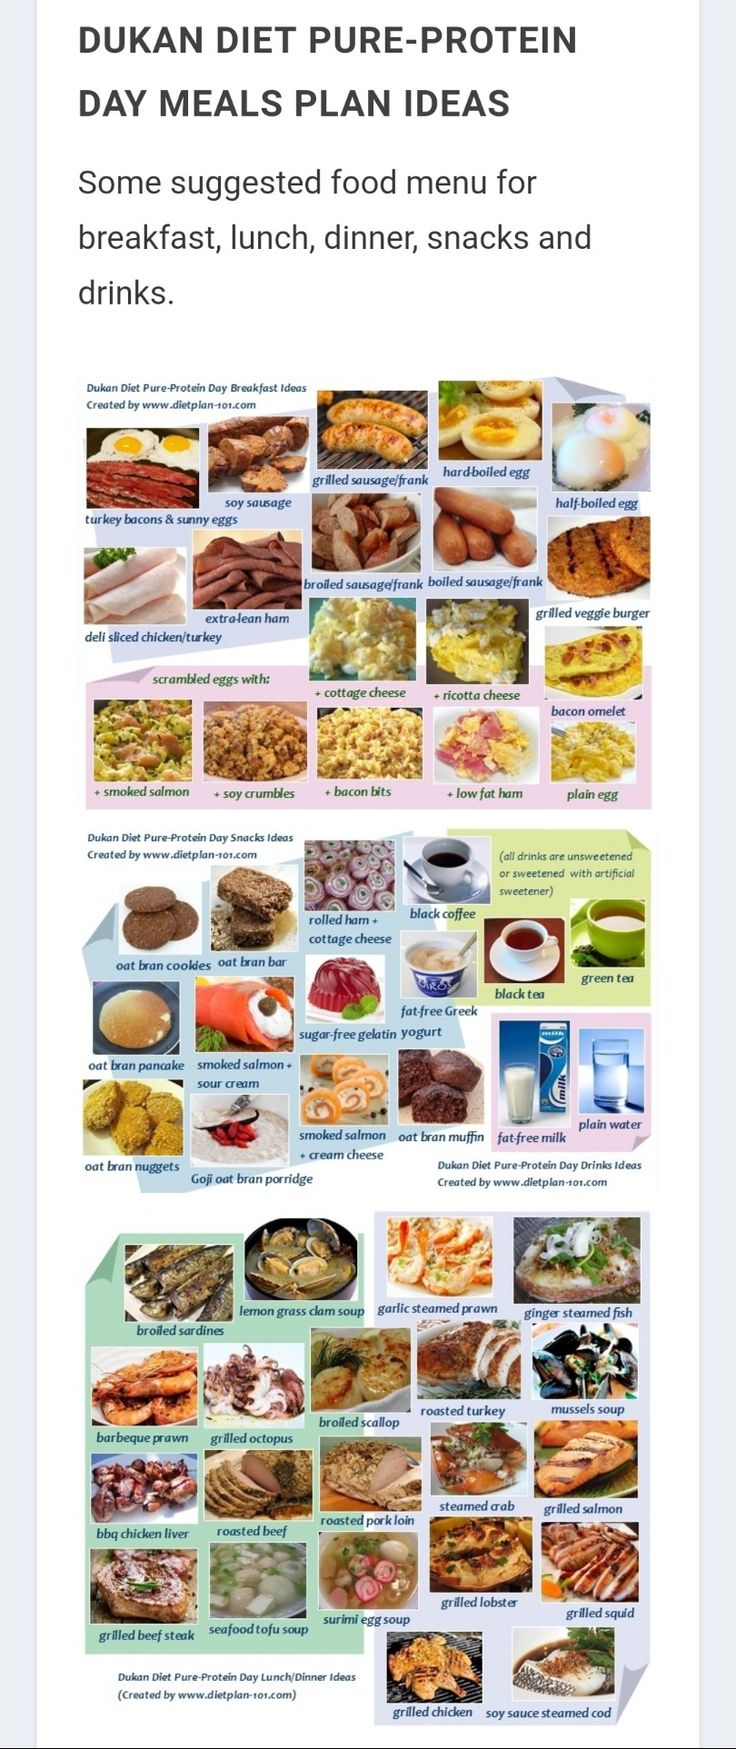 Dukan Diet Pure Protein Meal Plan Ideas